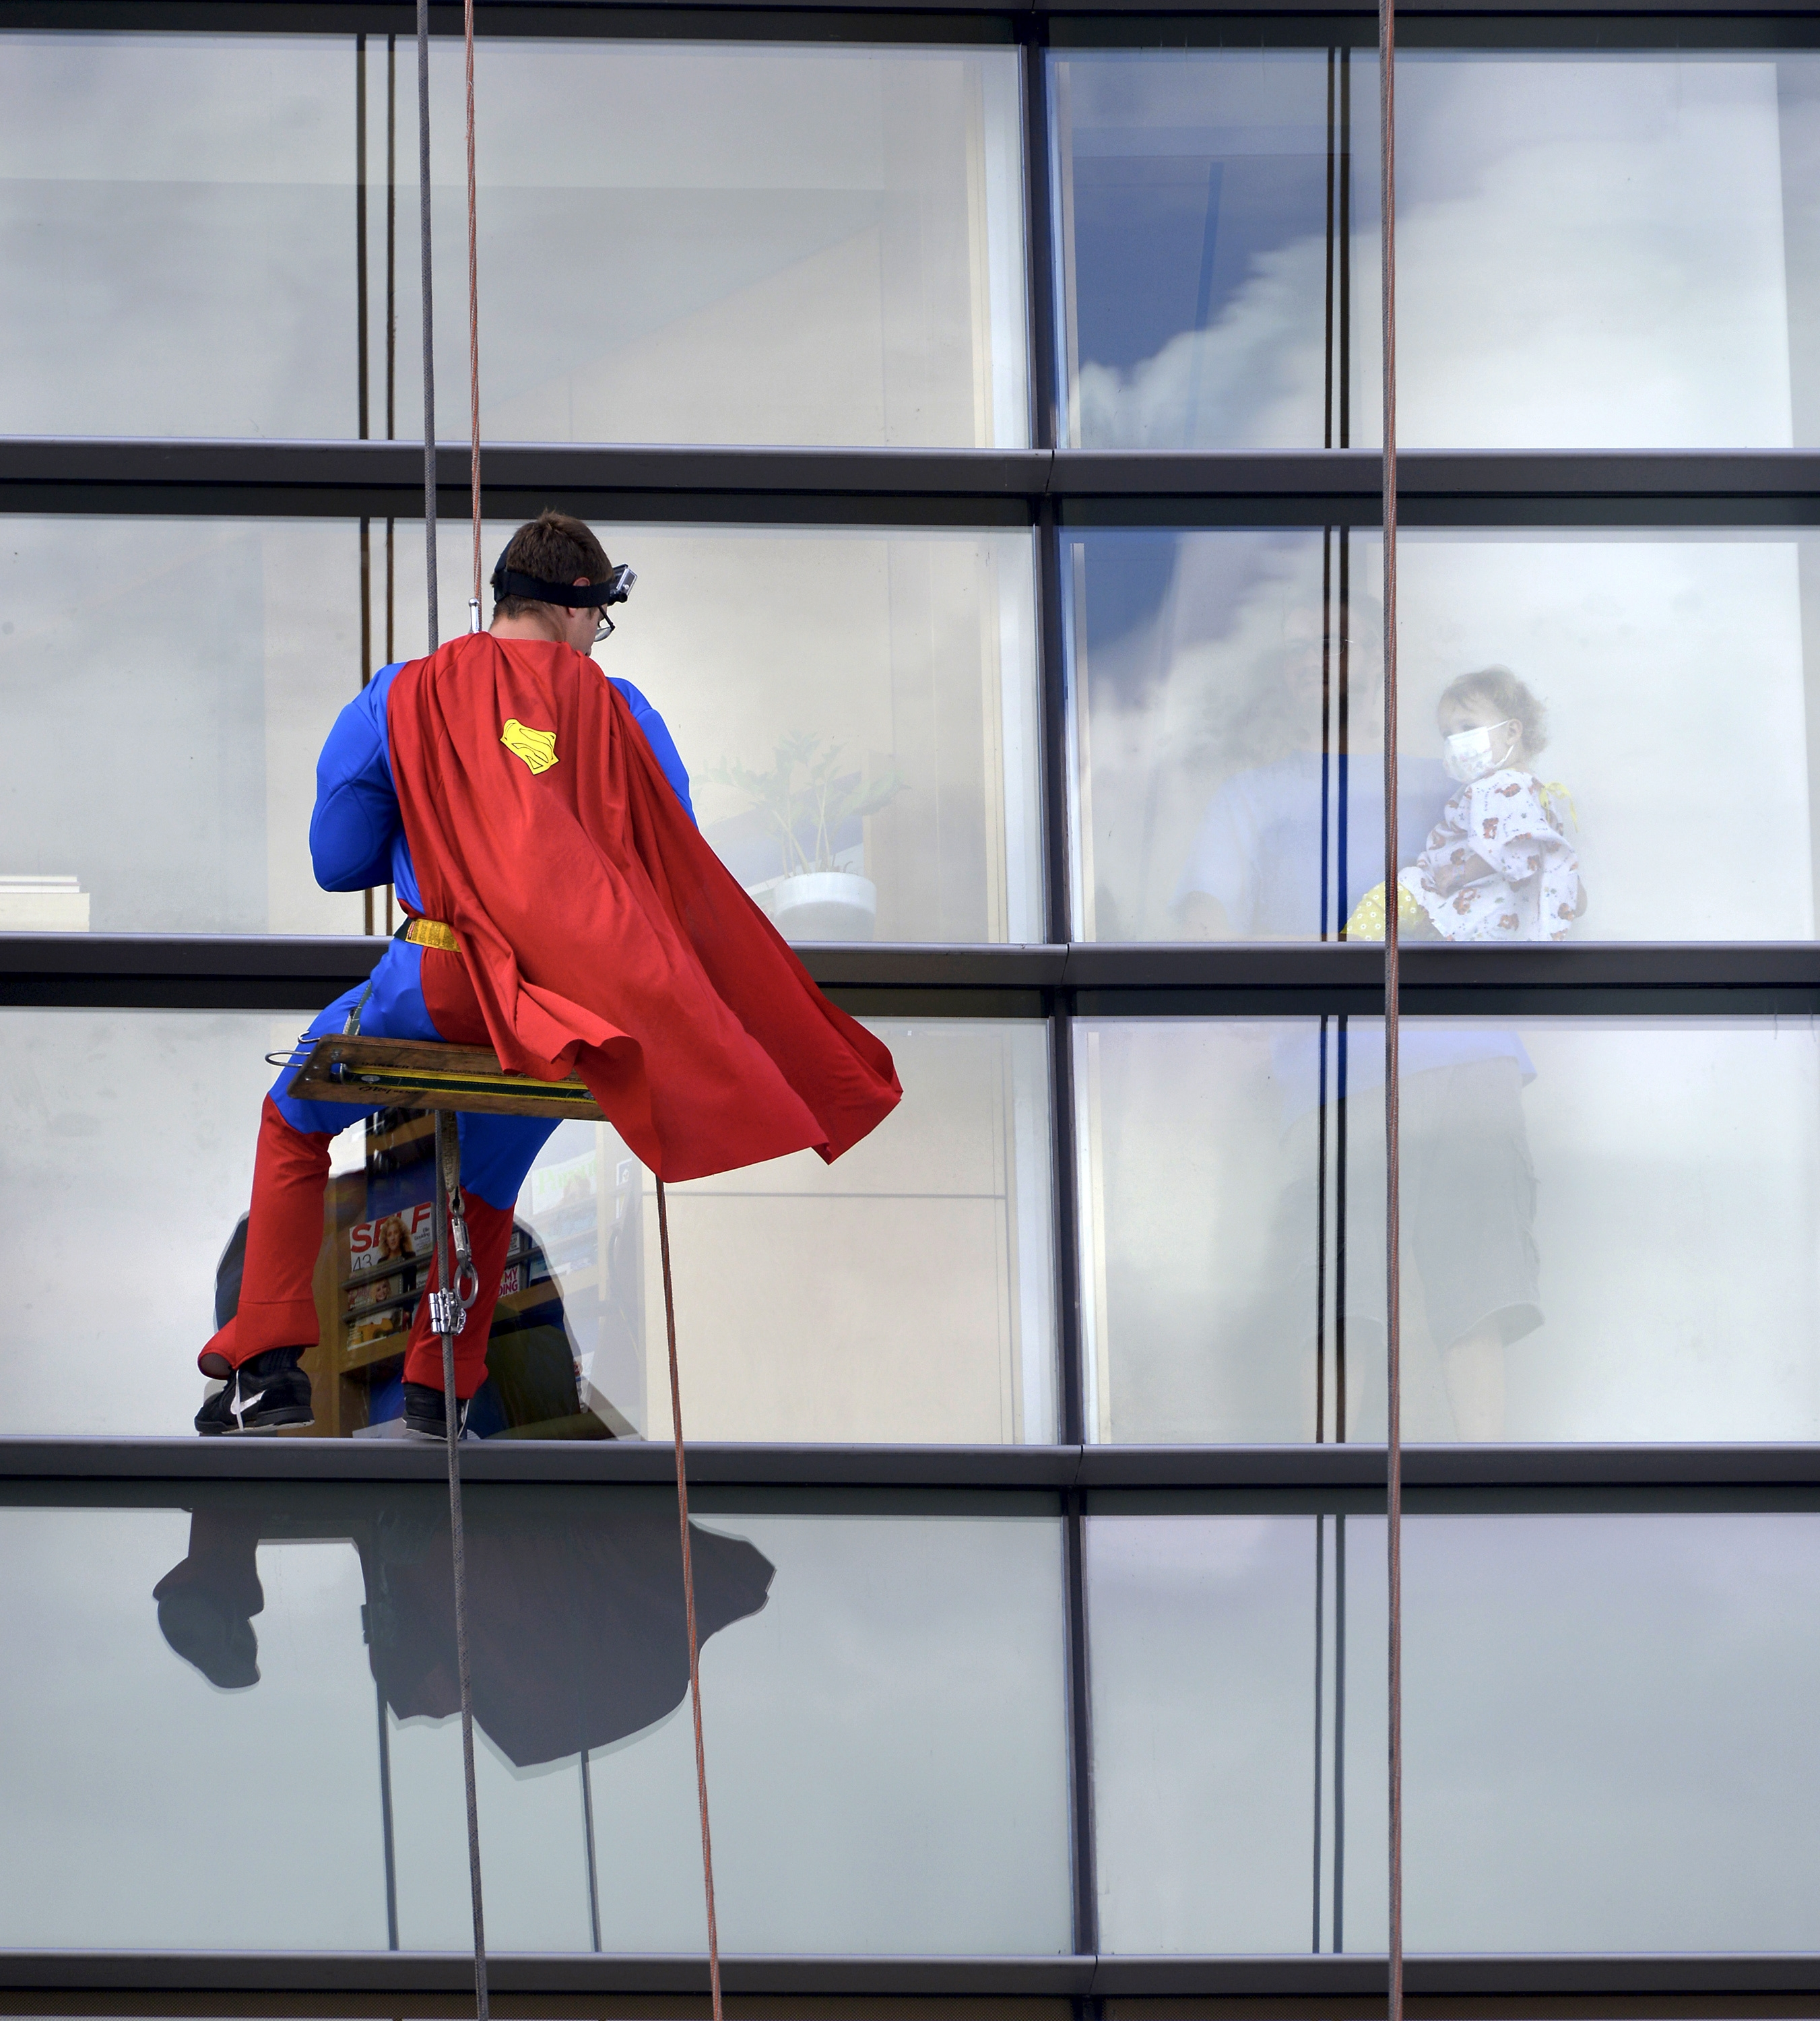 Super visitor: A young patient watches Superman rappel down  Hershey Children's Hospital Wednesday morning in Hershey, Pa. Four superhero window washers greeted patients.